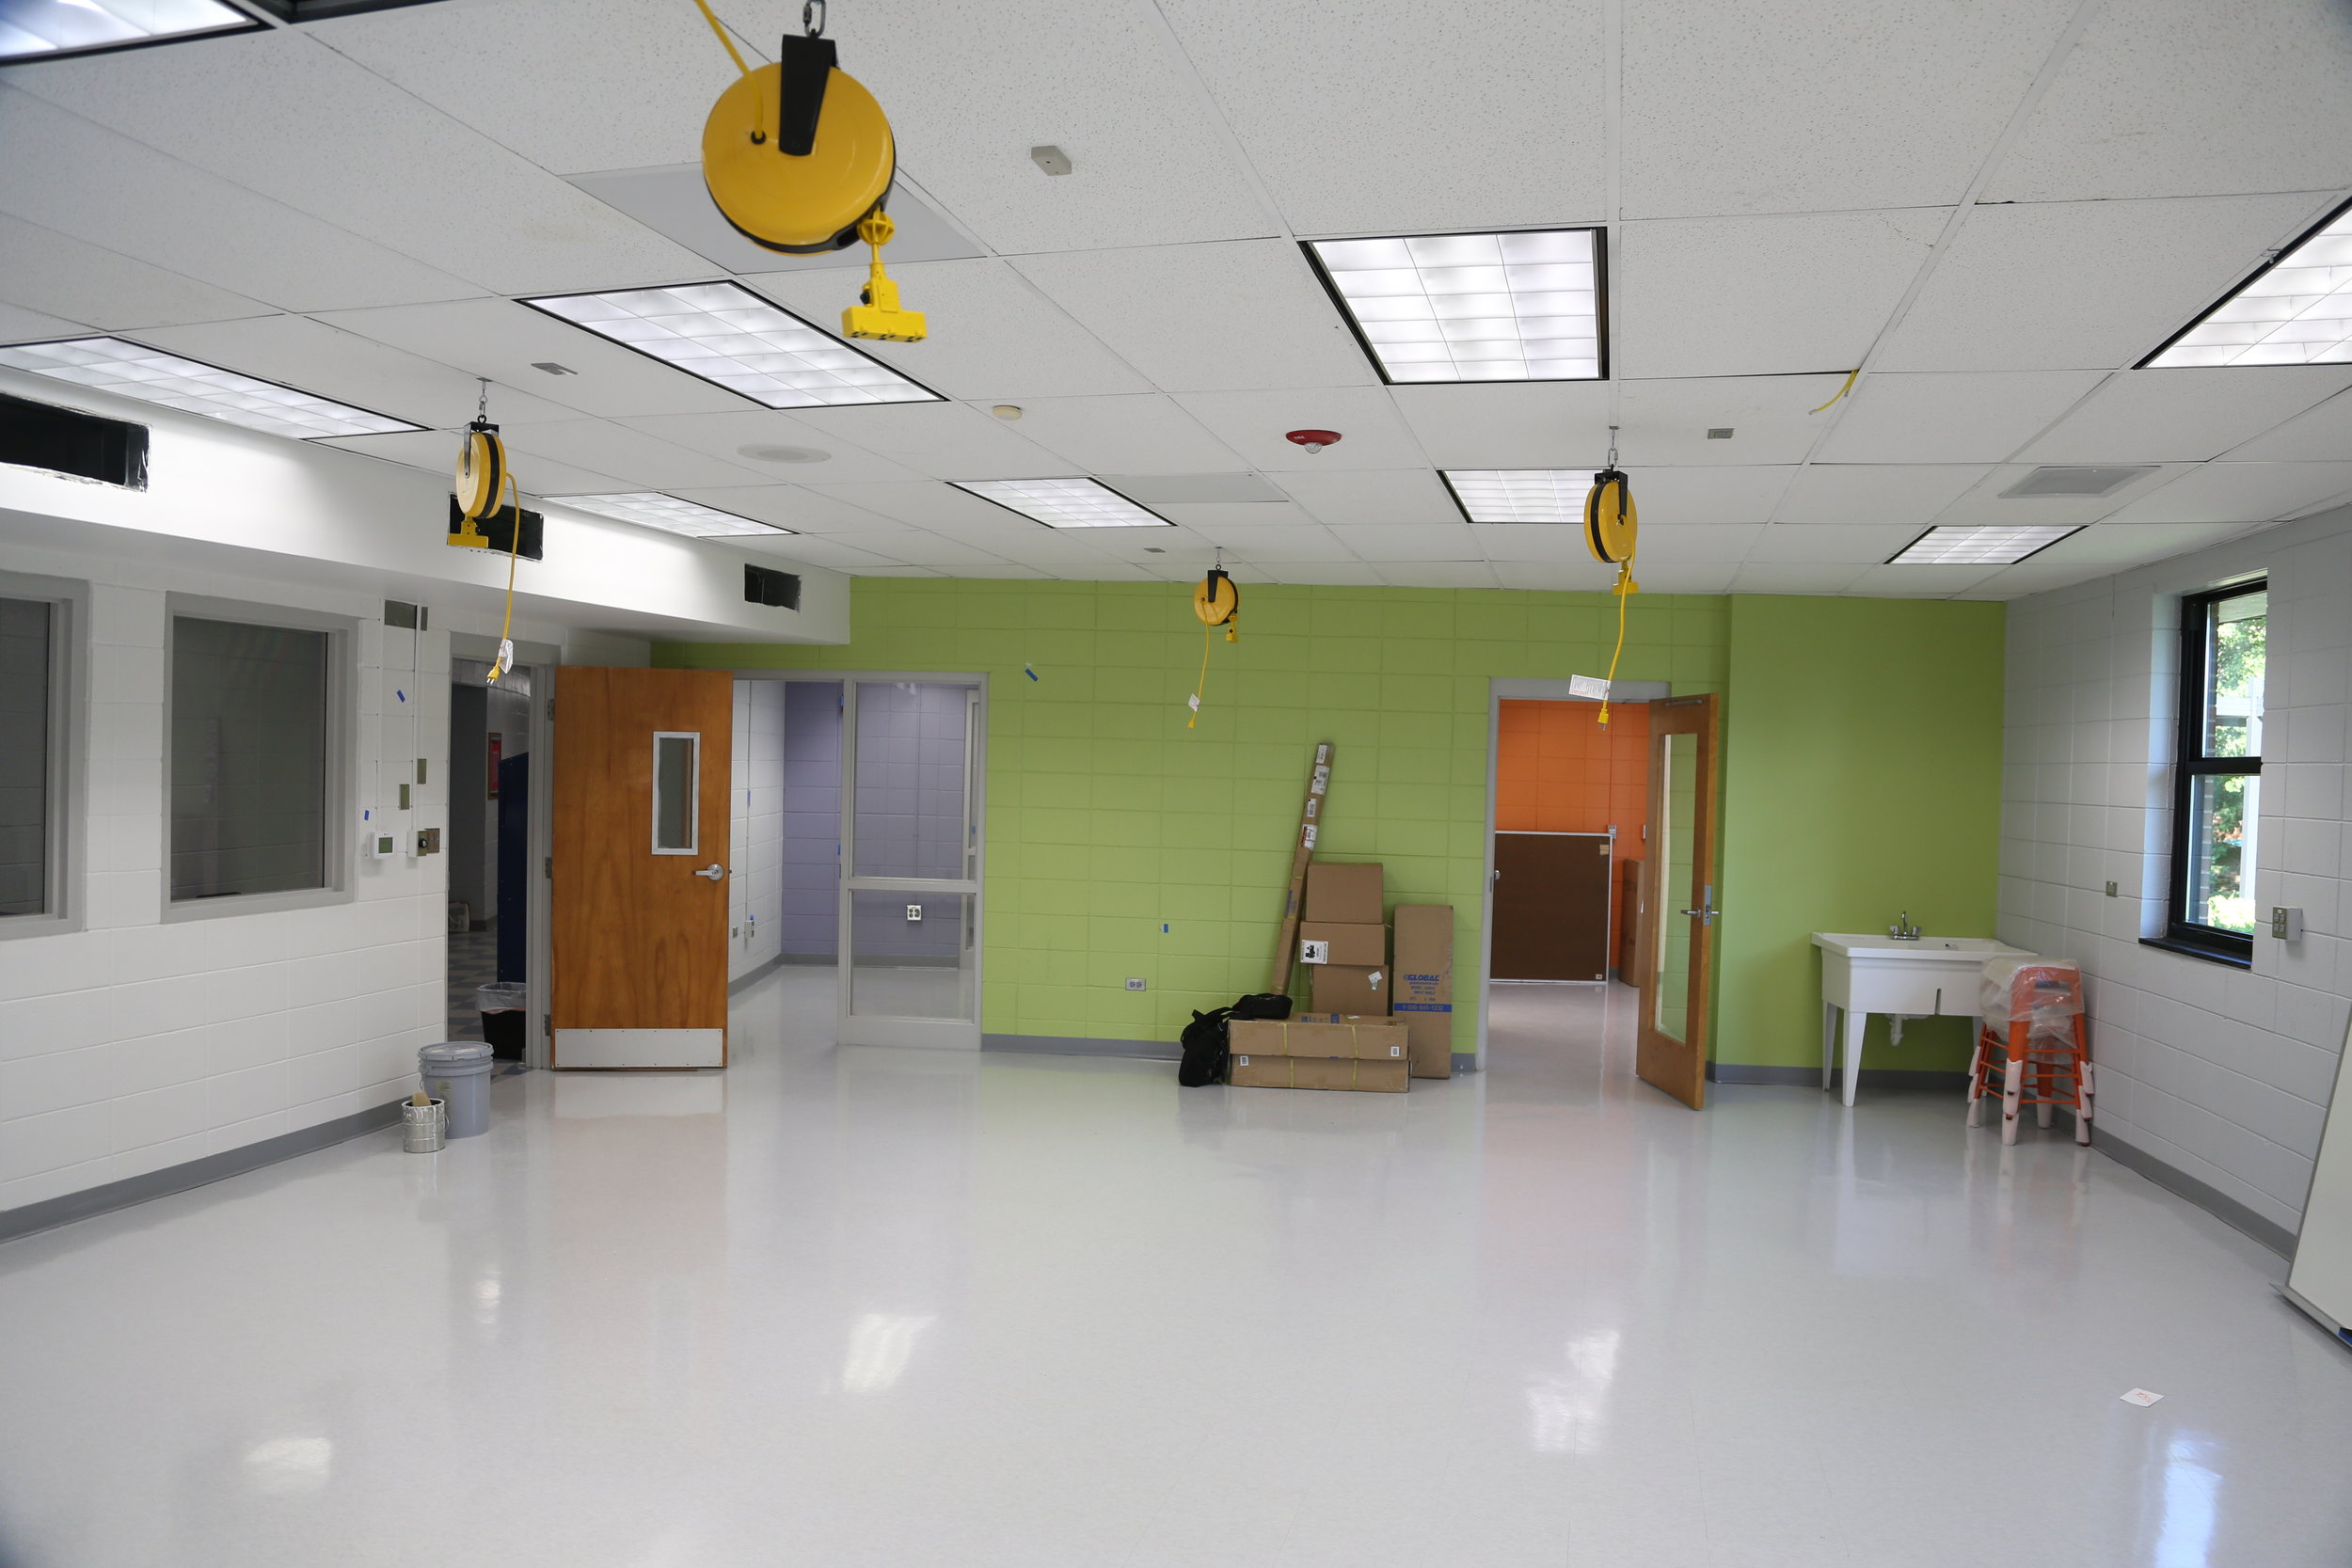 Before the install of the maker space equipment